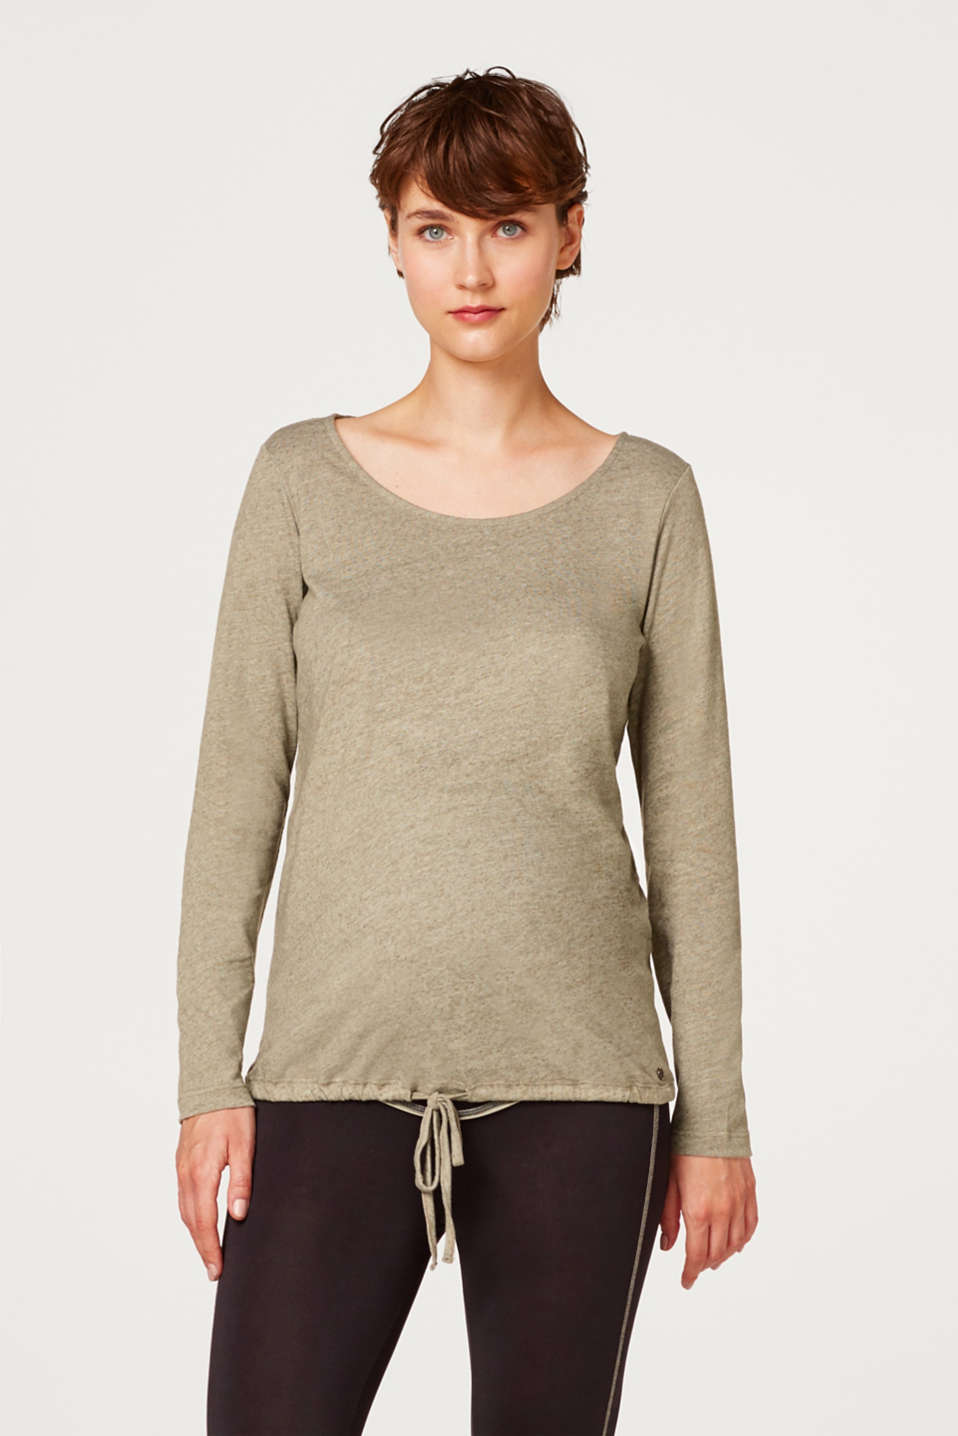 Esprit - Melange long sleeve top with a drawstring